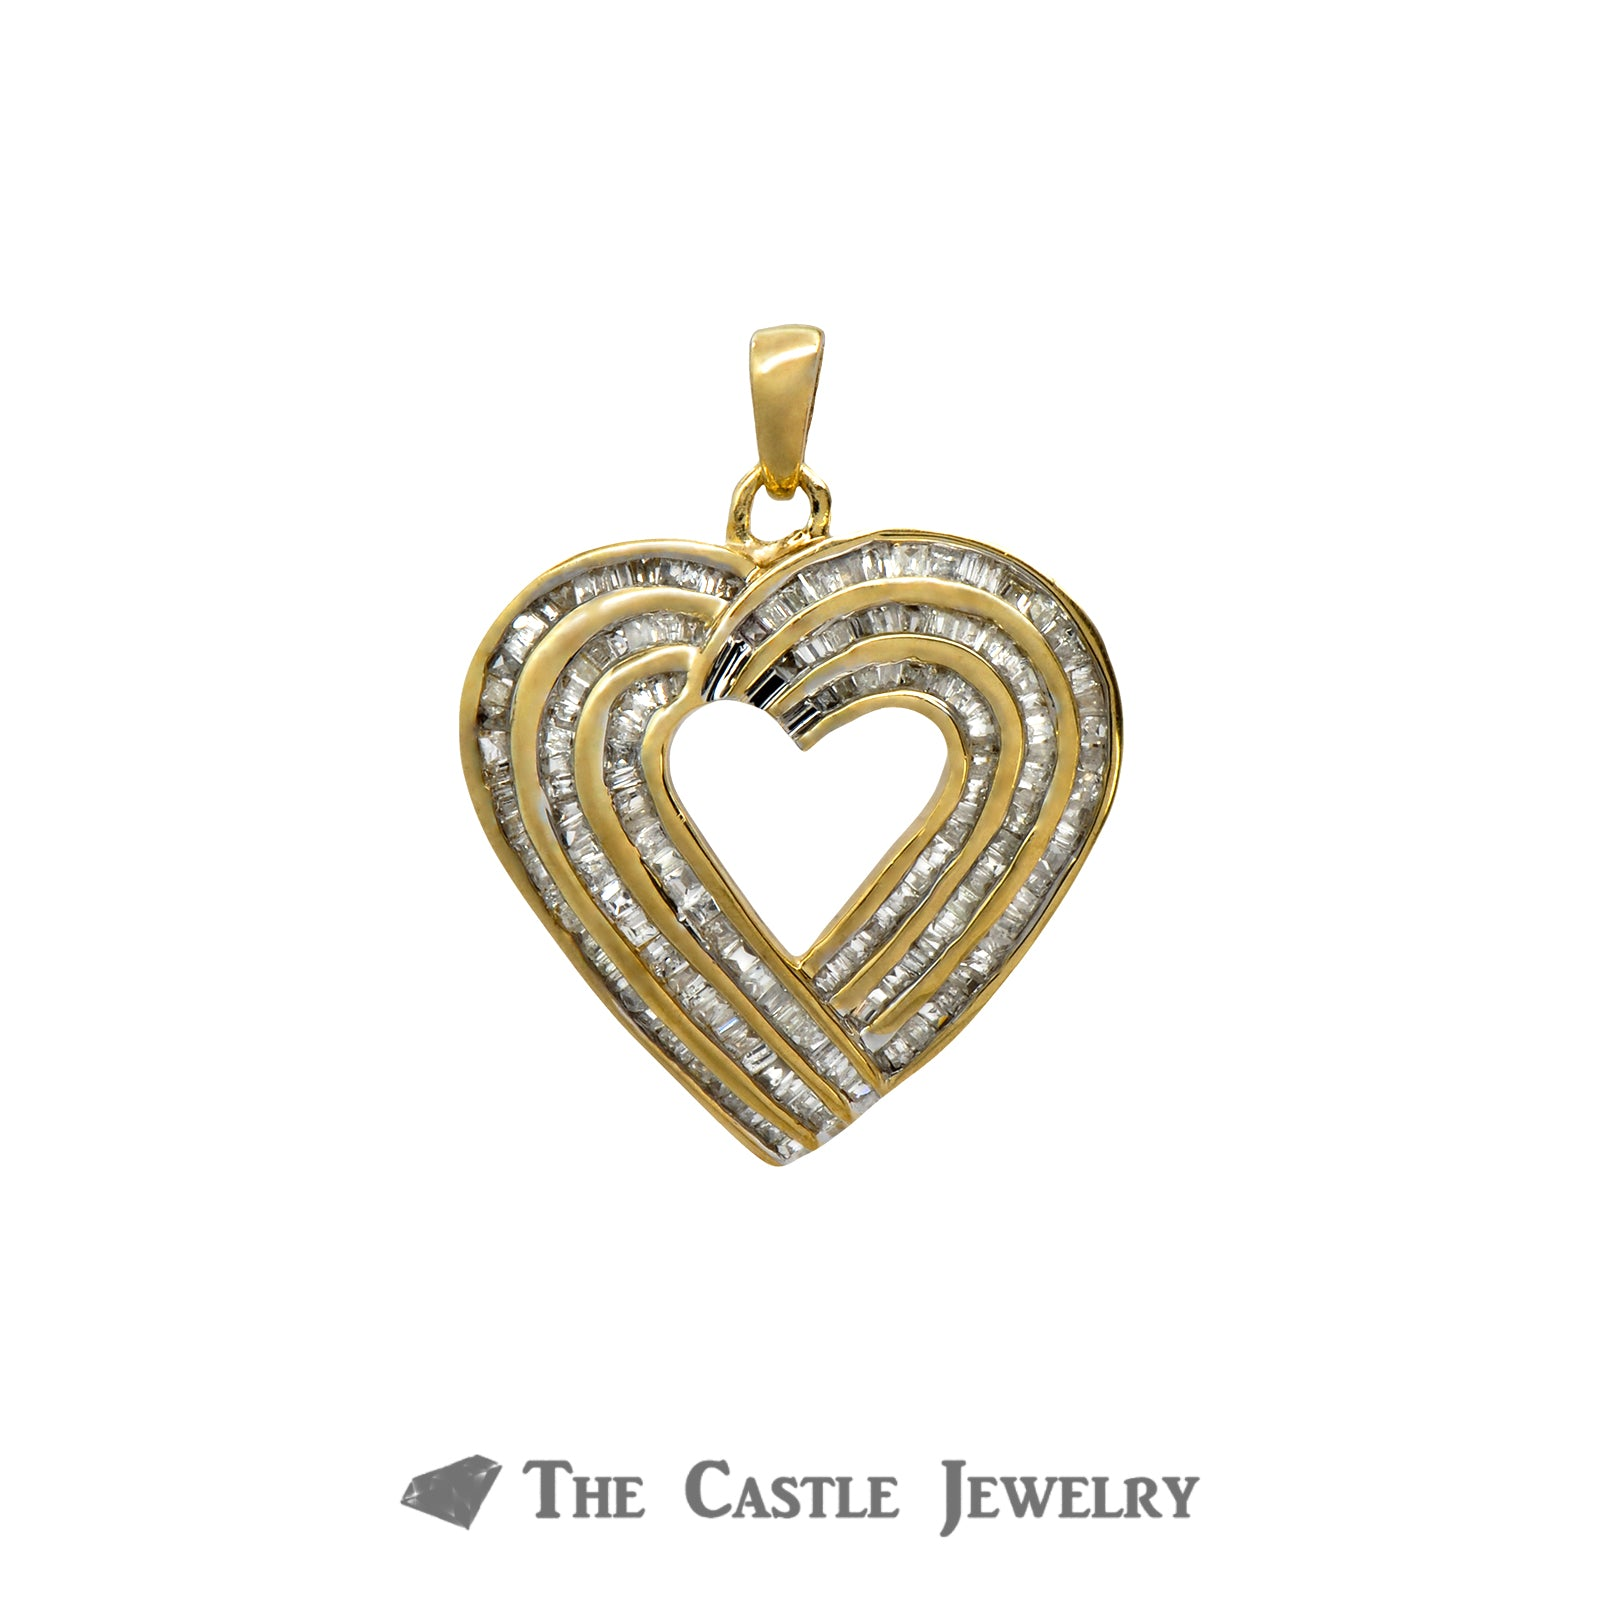 Heart Pendant with 3 Rows of 1cttw Channel Set Baguette Cut Diamonds in 10k Yellow Gold